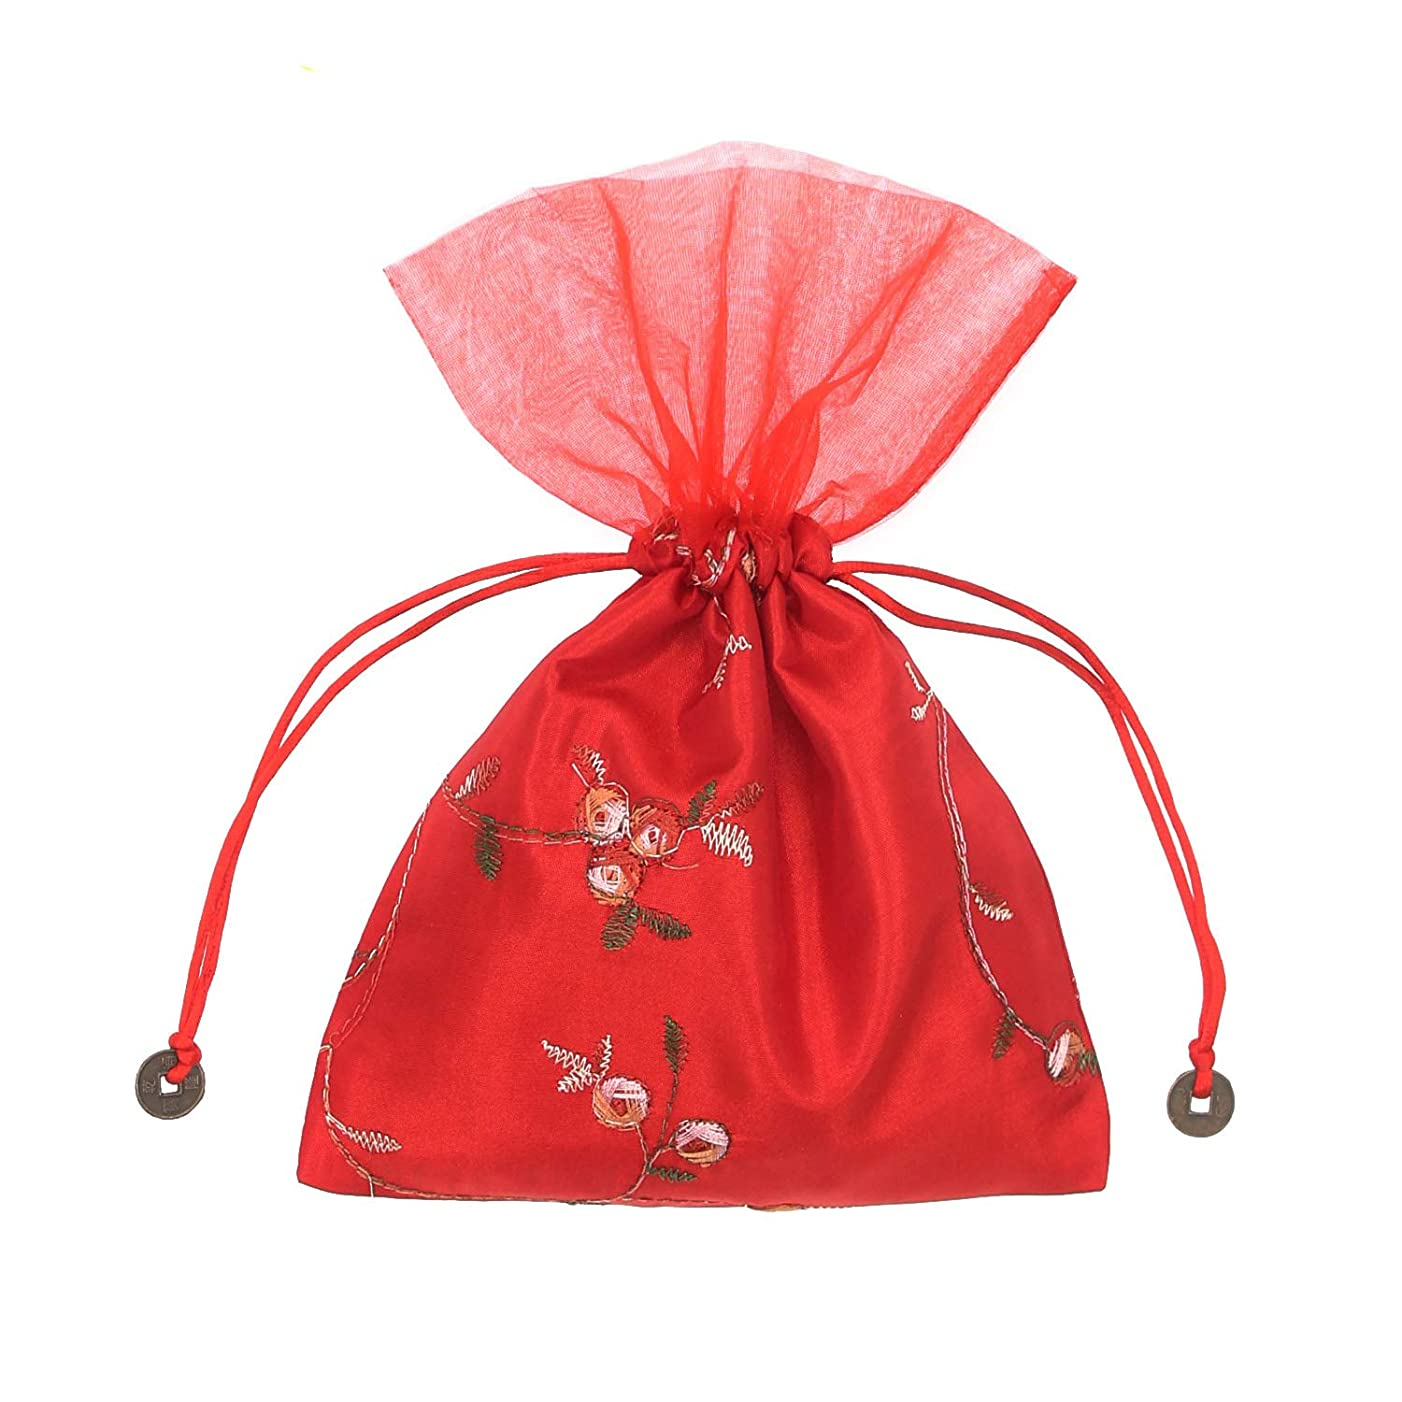 SumDirect 5Pcs 6X9 inches Brocade Organza Jewelry Pouch Bags,Drawstring Gift Bags (Red)